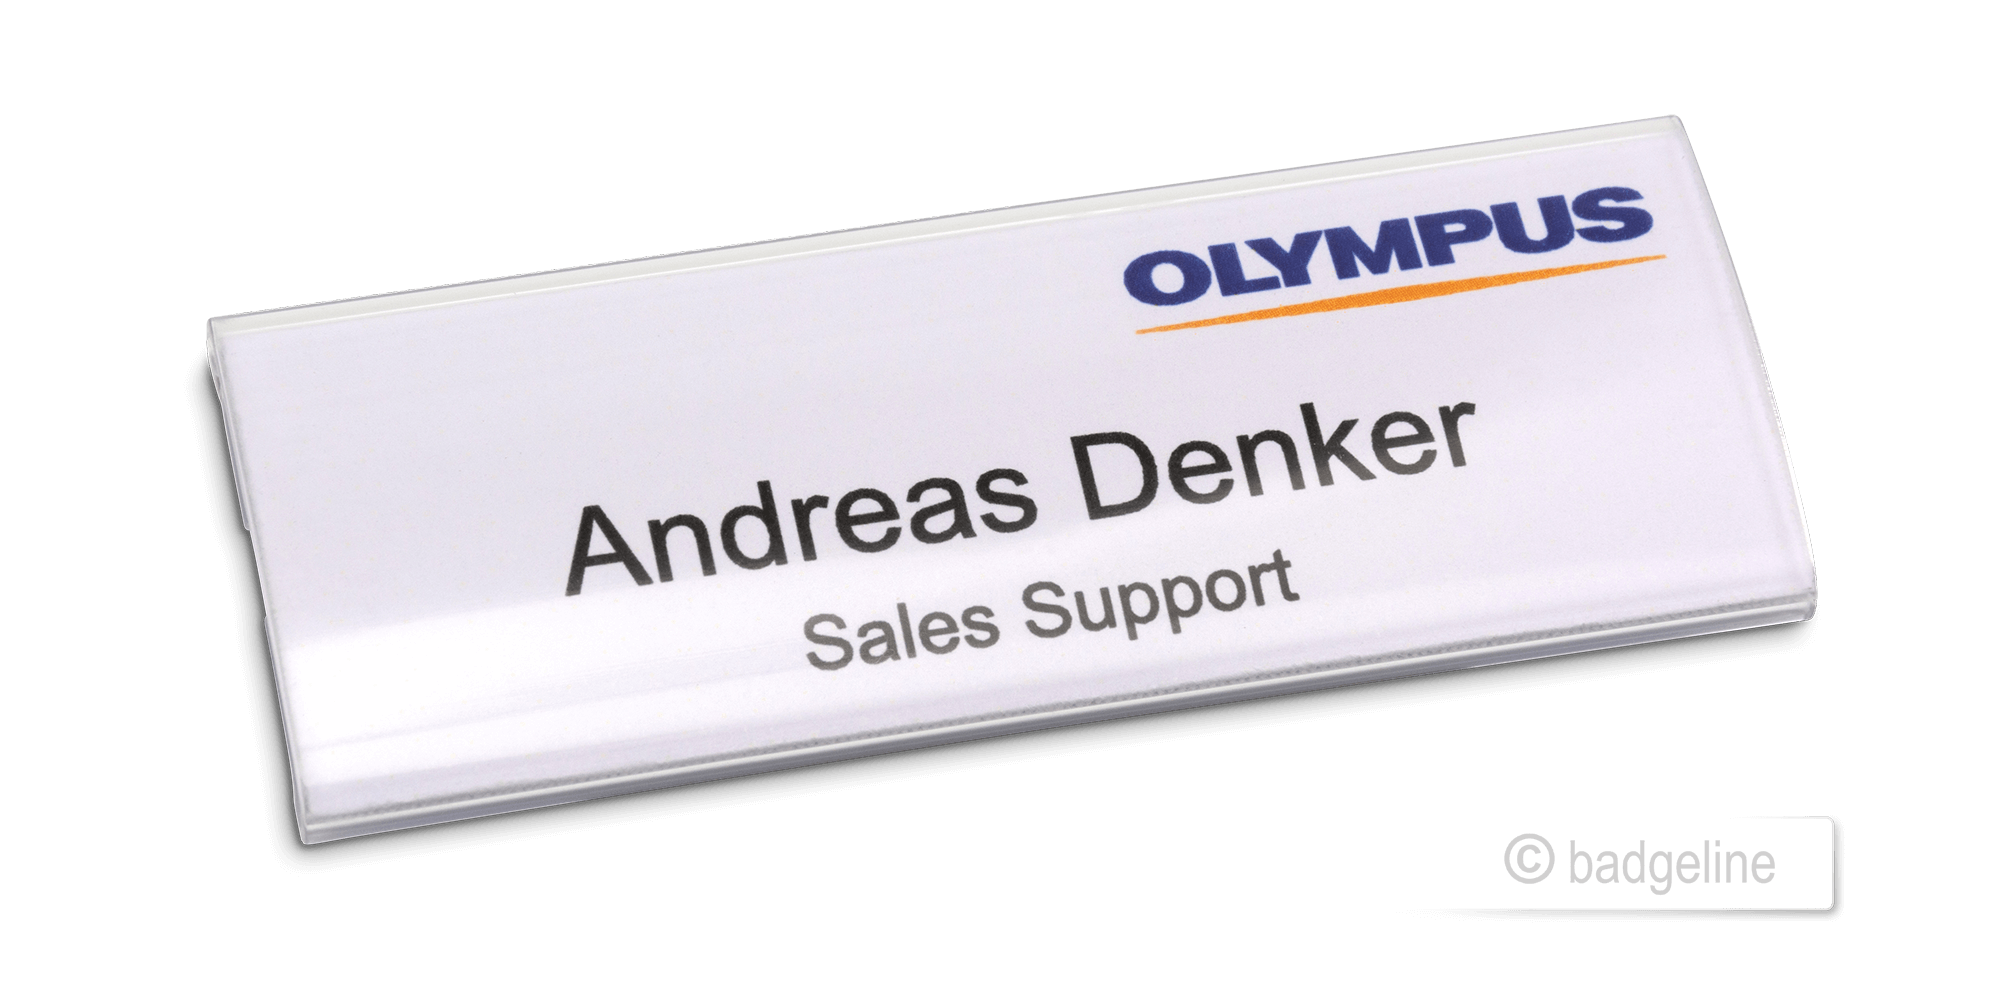 acrylic glas name badge self-inscription with magnet - ex stock